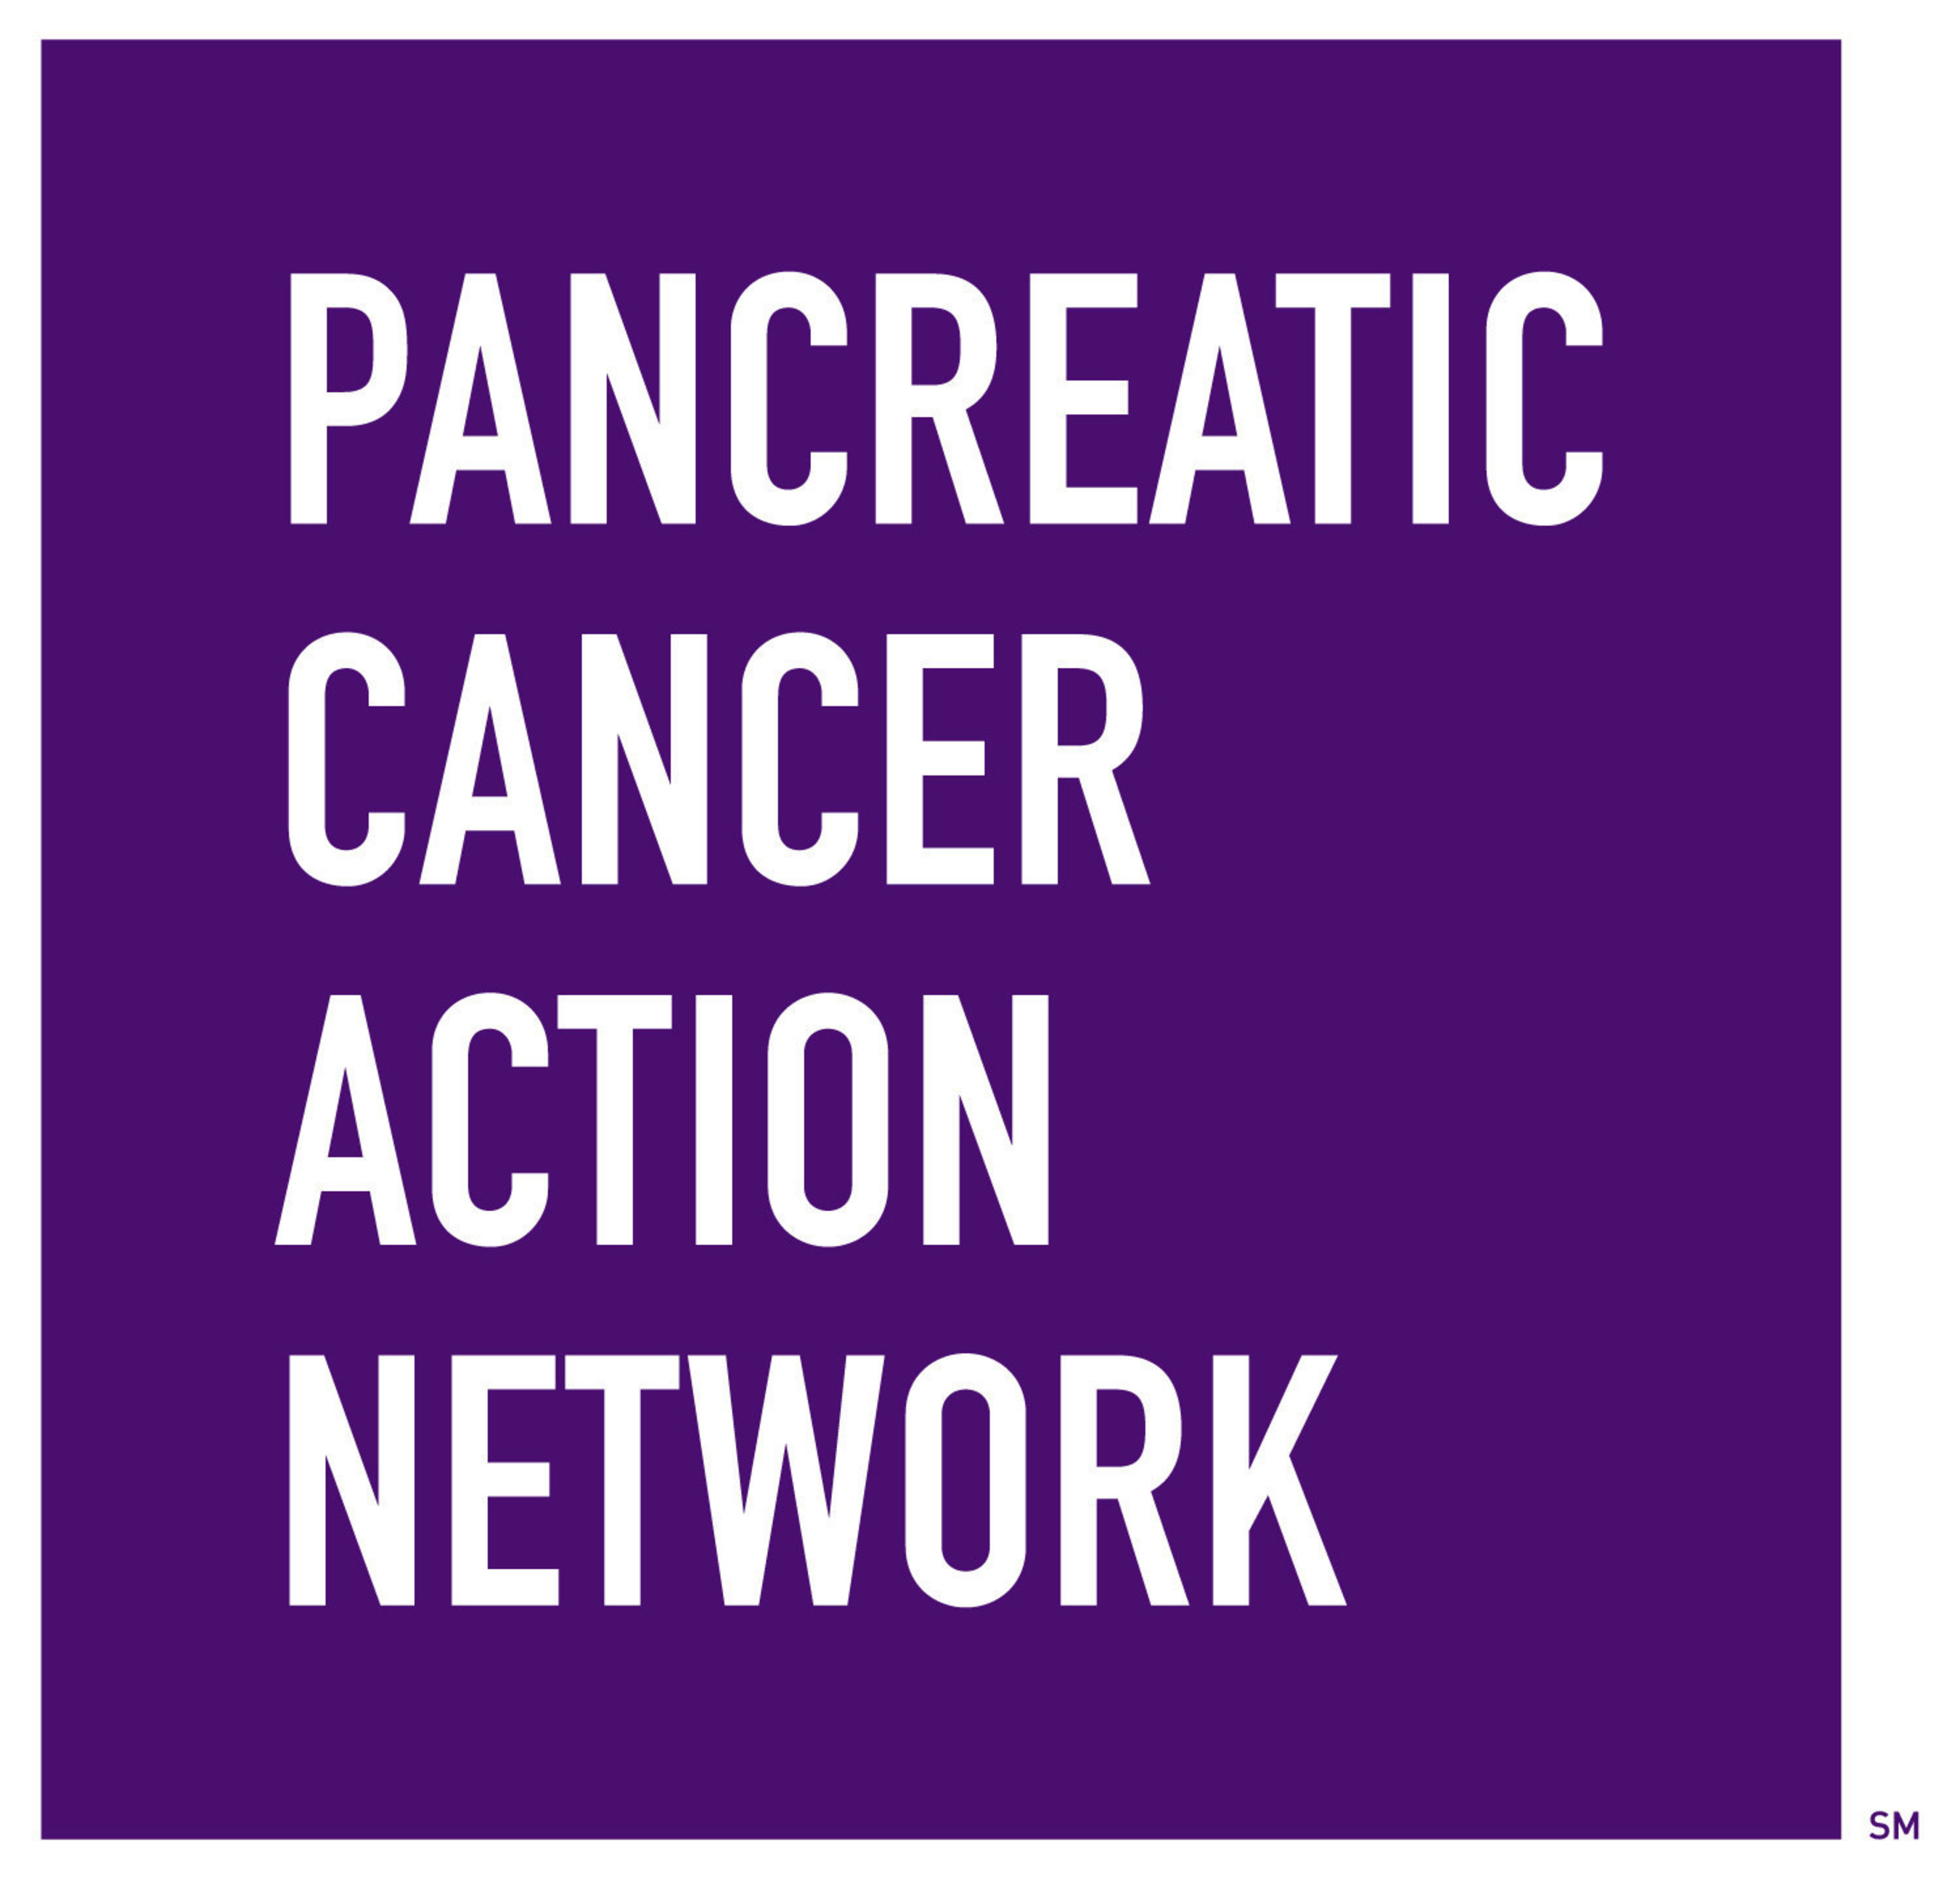 The Pancreatic Cancer Action Network, the national organization working to advance research, support patients and create hope for those affected by pancreatic cancer. To learn more, please visit www.pancan.org.